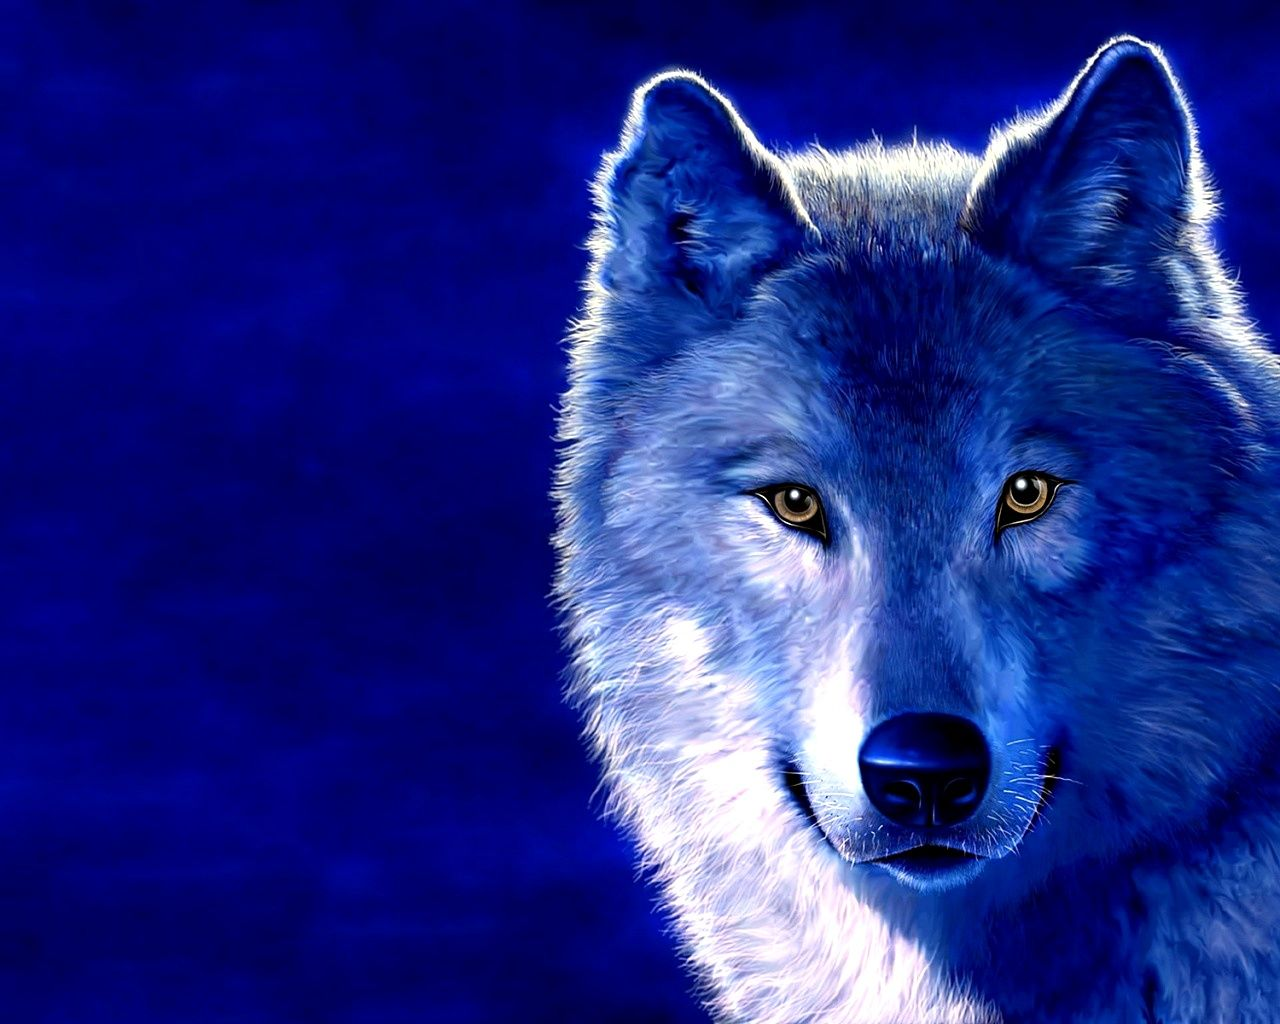 Hd Desktop Wallpapers Free Online Desktop Wallpapers Wolf Wallpaper Wolf Photos Animals